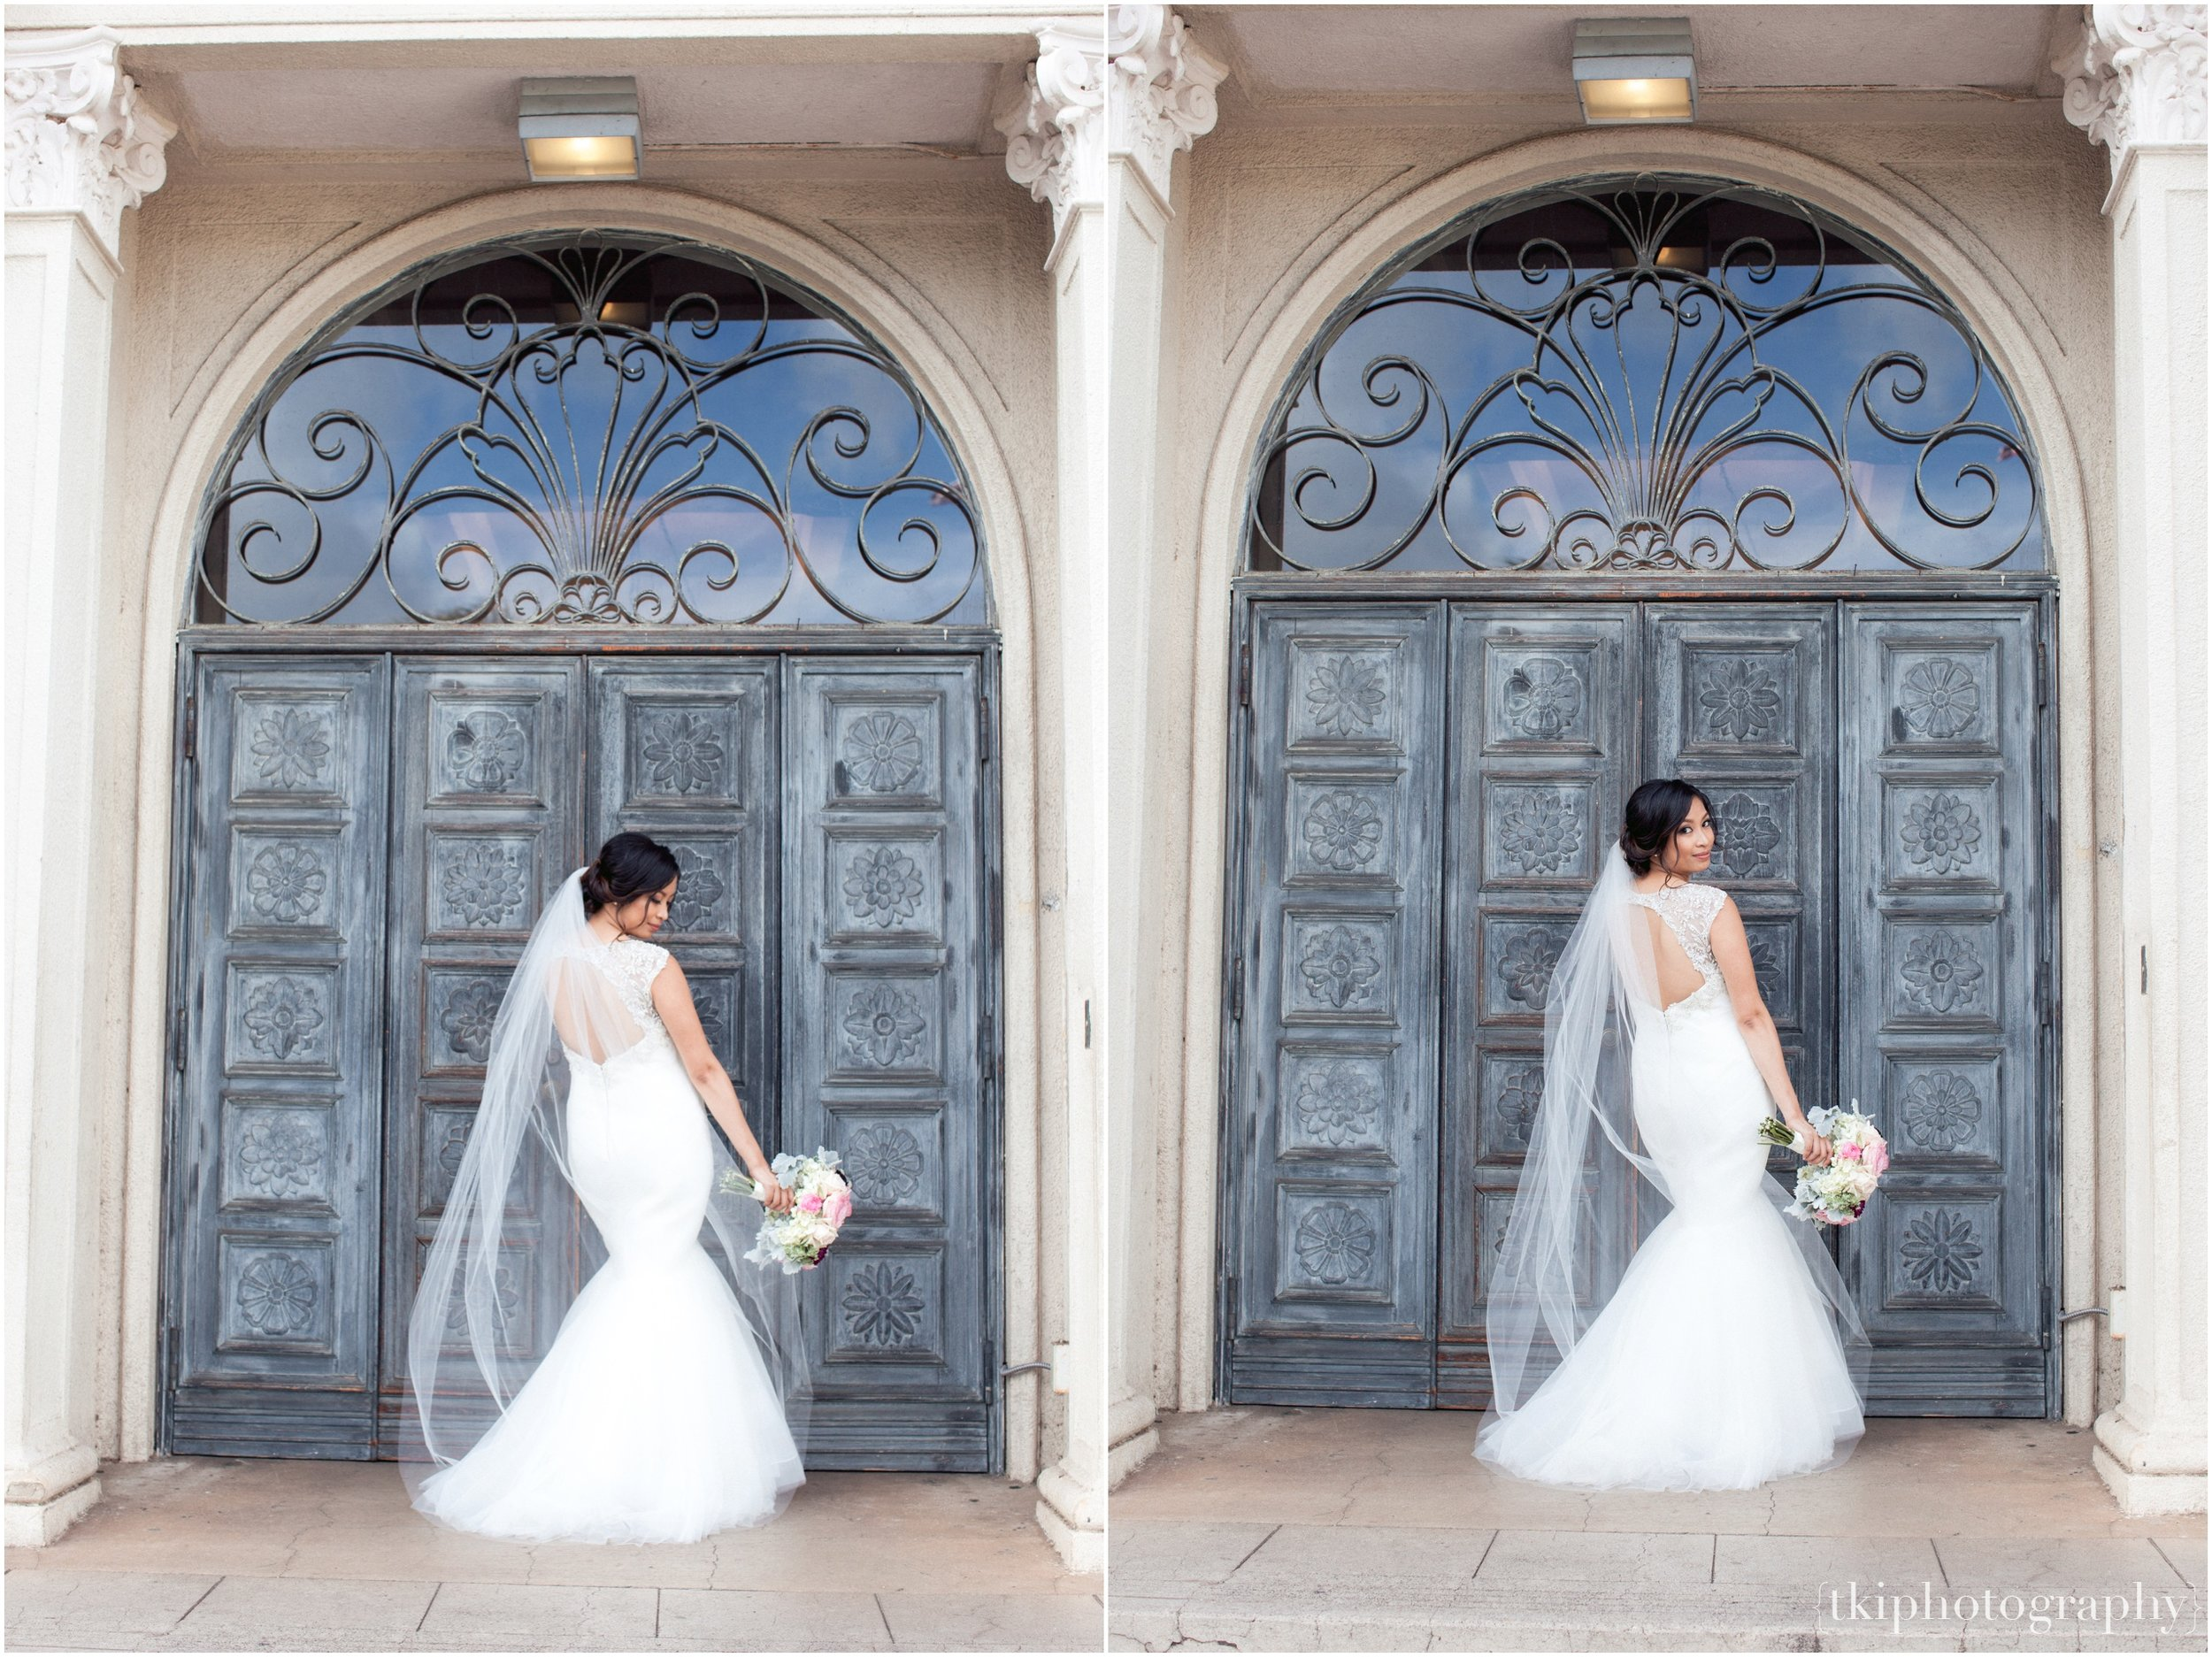 This front door at Cafe Julia YWCA is a great touch to some stunning portraits.